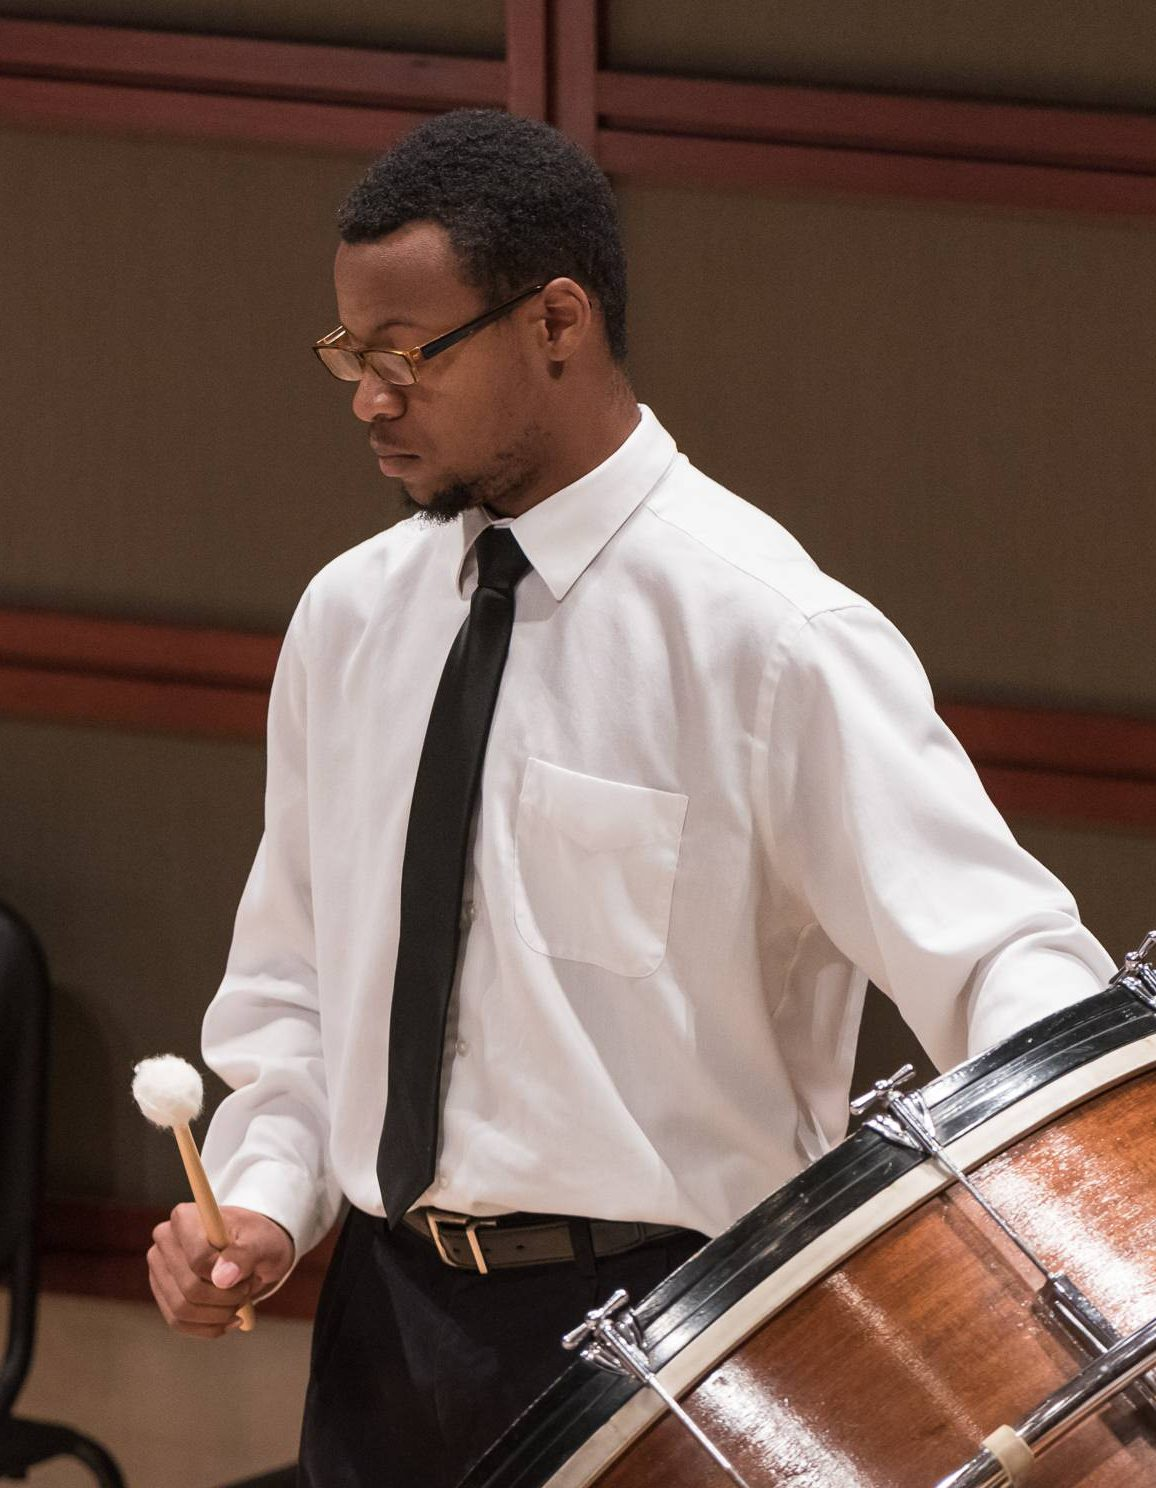 Photo of a percussionist playing the bass drum at a performance